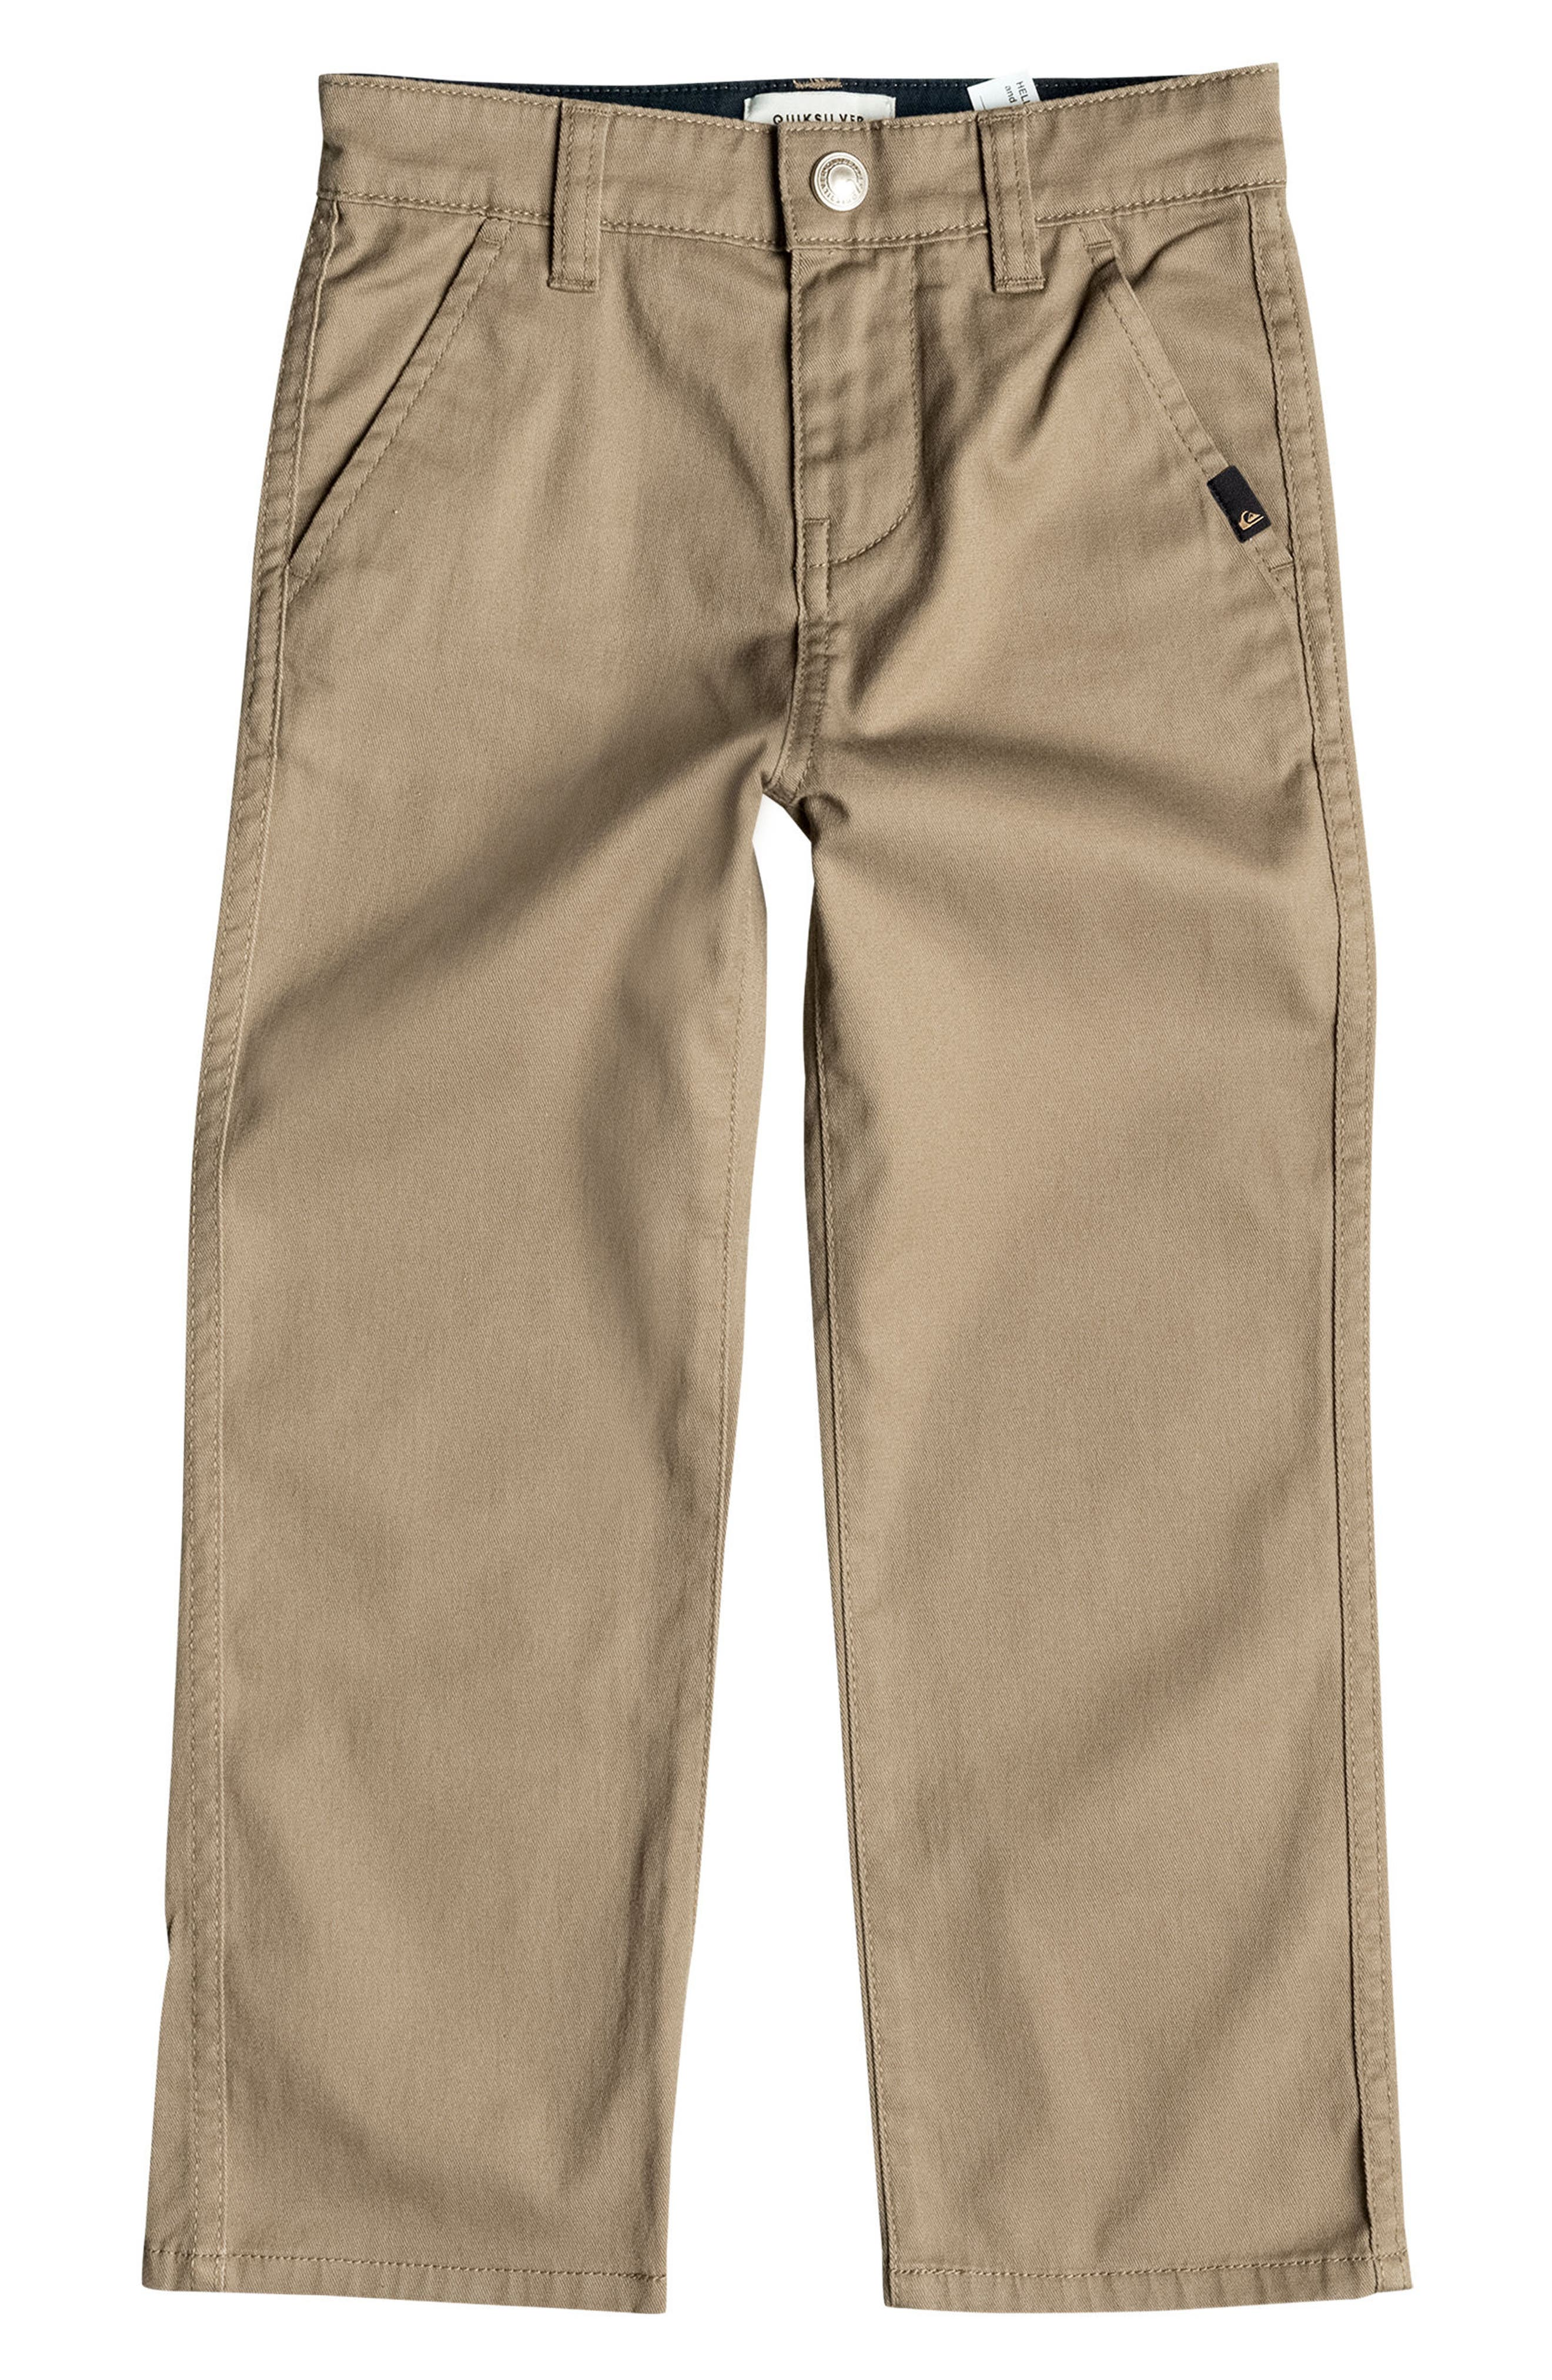 Alternate Image 1 Selected - Quiksilver Everyday Union Pants (Toddler Boys & Little Boys)